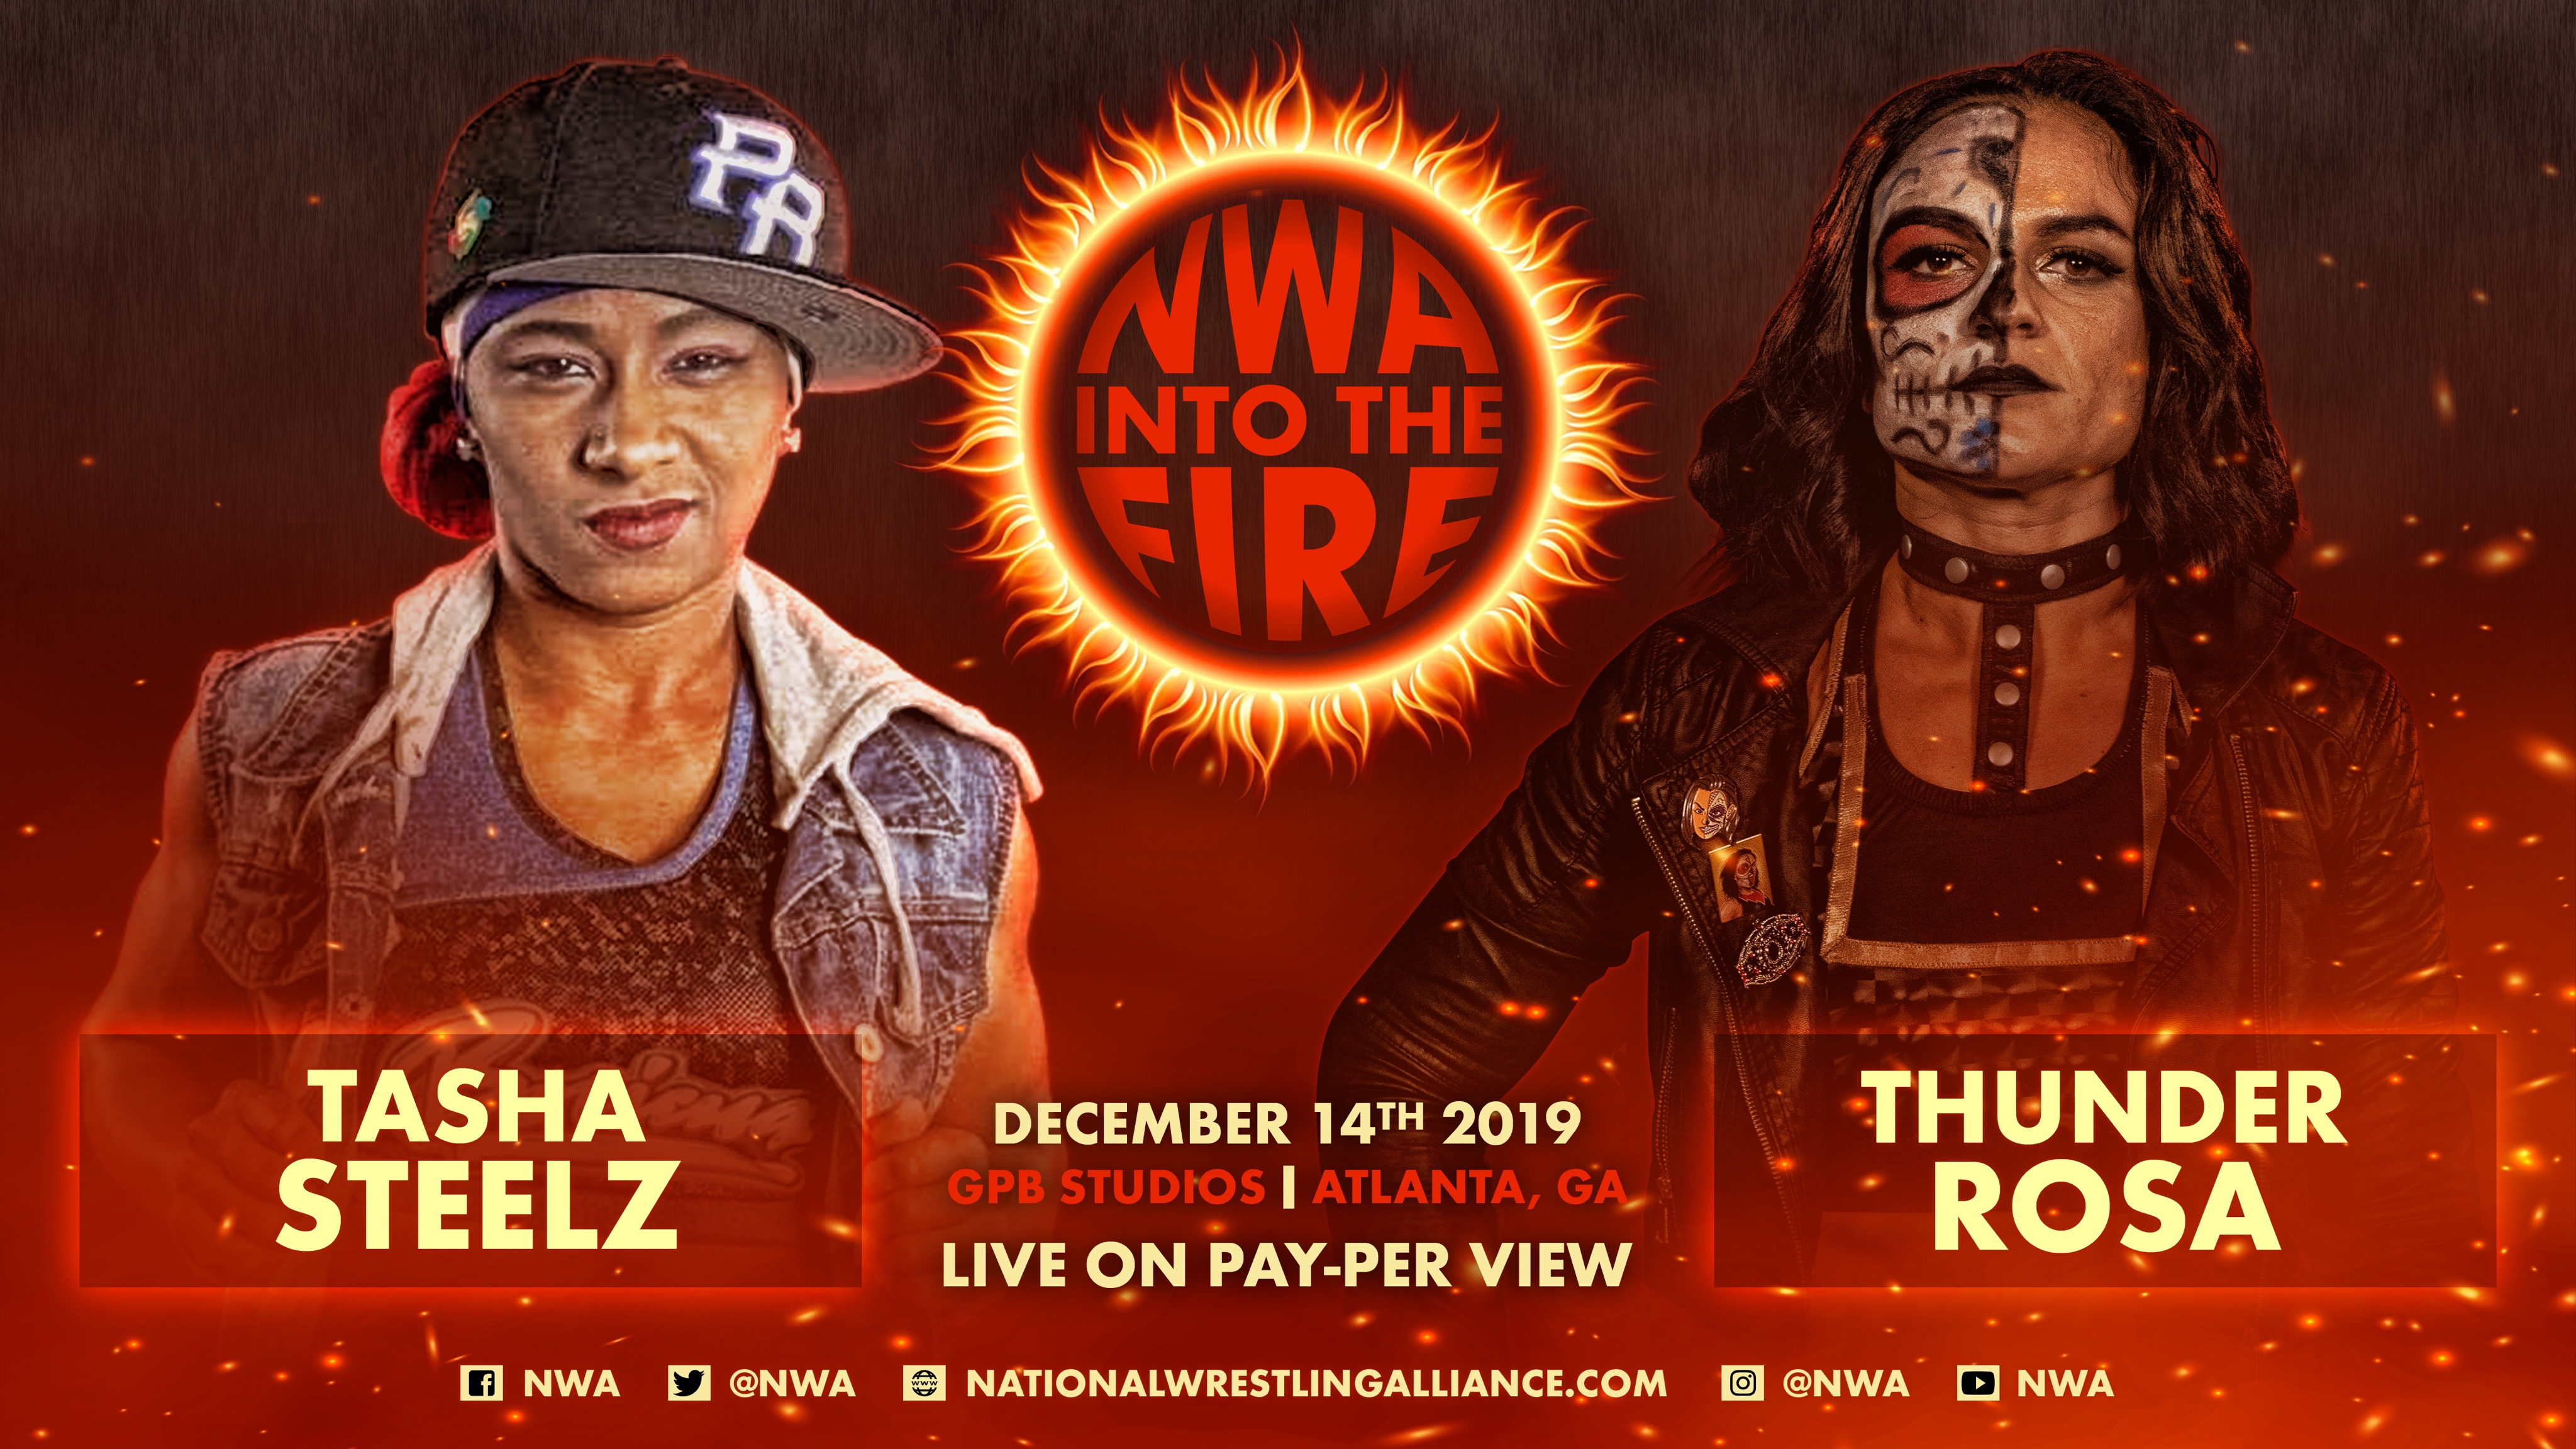 Tasha Steelz vs. Thunder Rosa added to NWA Into the Fire